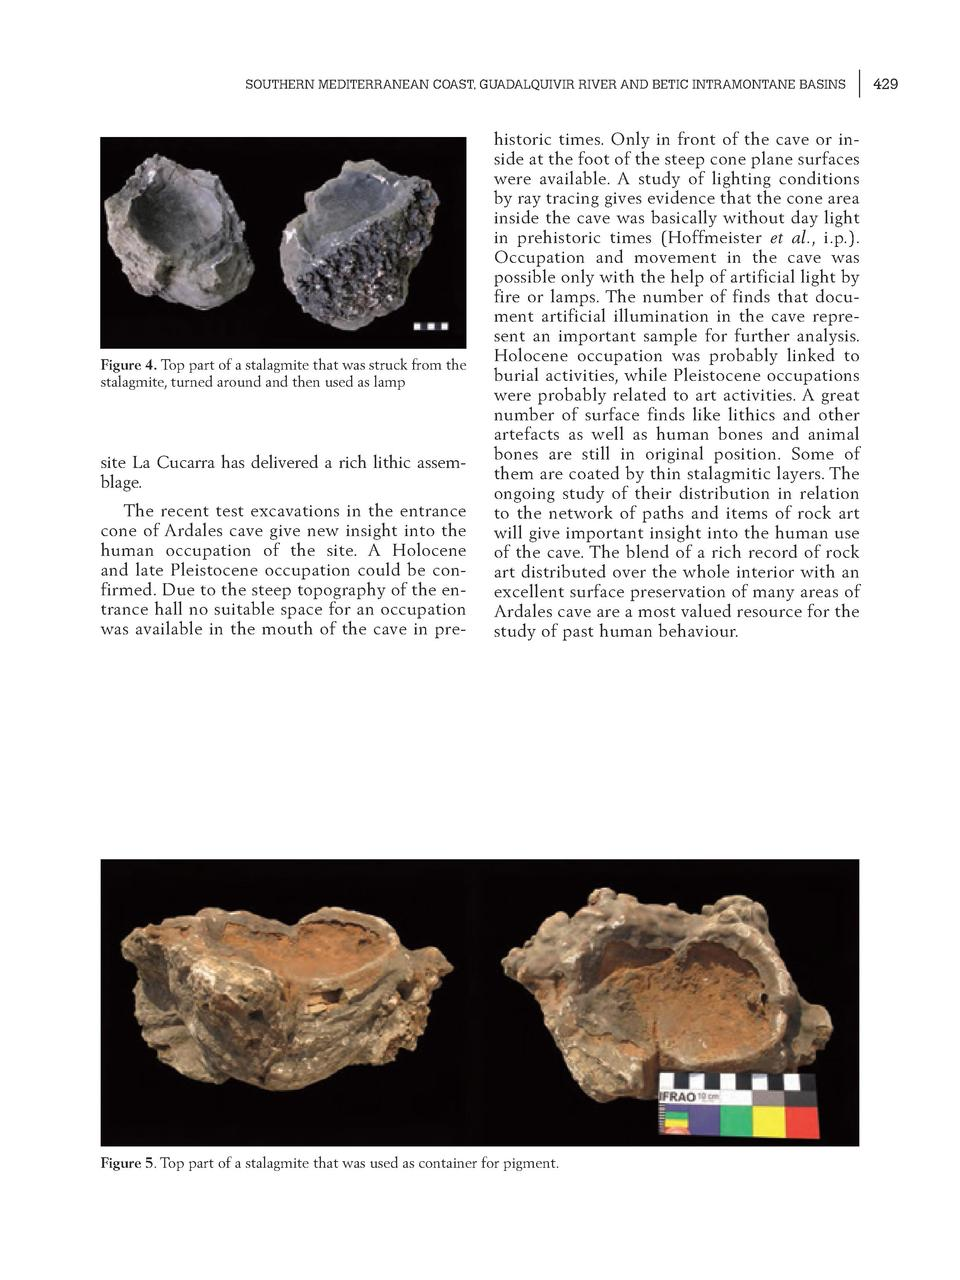 SOUTHERN MEDITERRANEAN COAST, GUADALQUIVIR RIVER AND BETIC INTRAMONTANE BASINS  Figure 4. Top part of a stalagmite that wa...